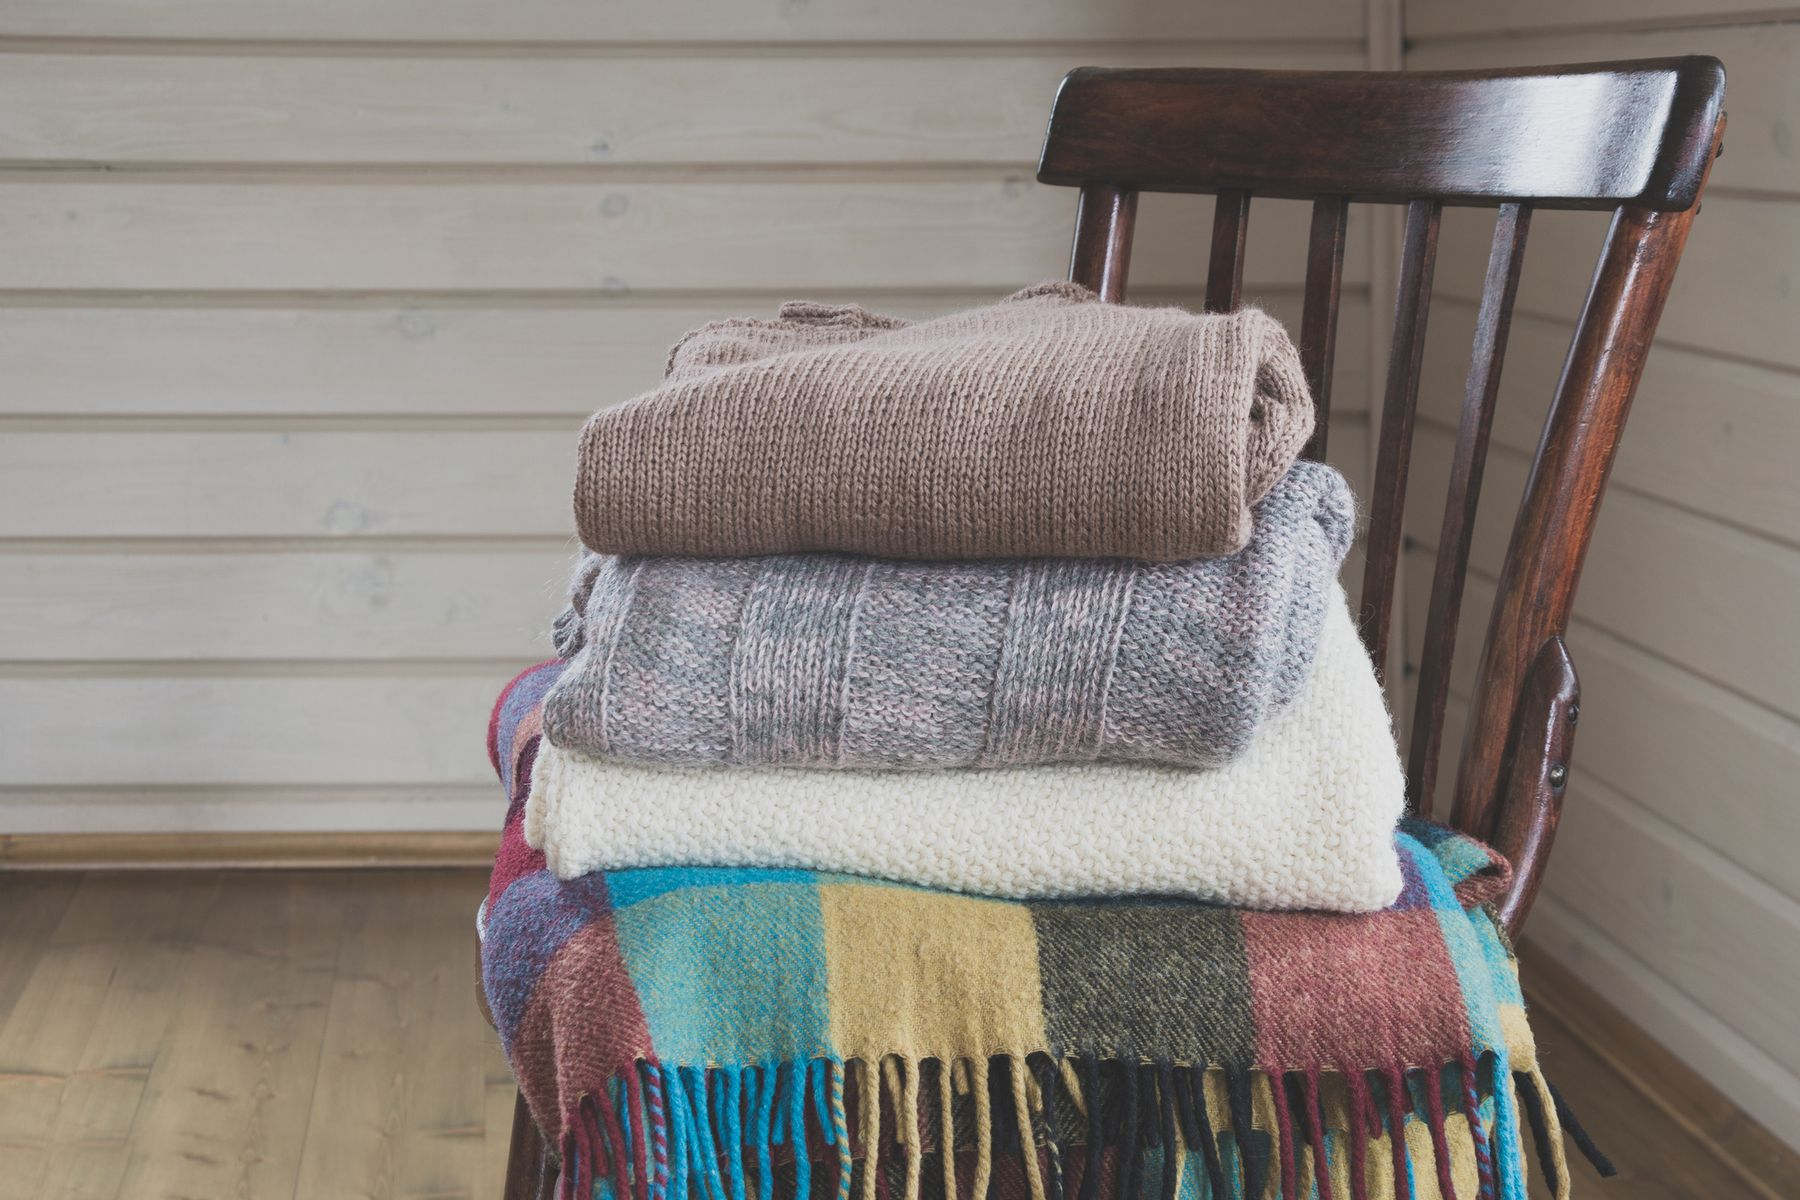 How to wash wool: blankets and jumpers folded in a pile on a chair